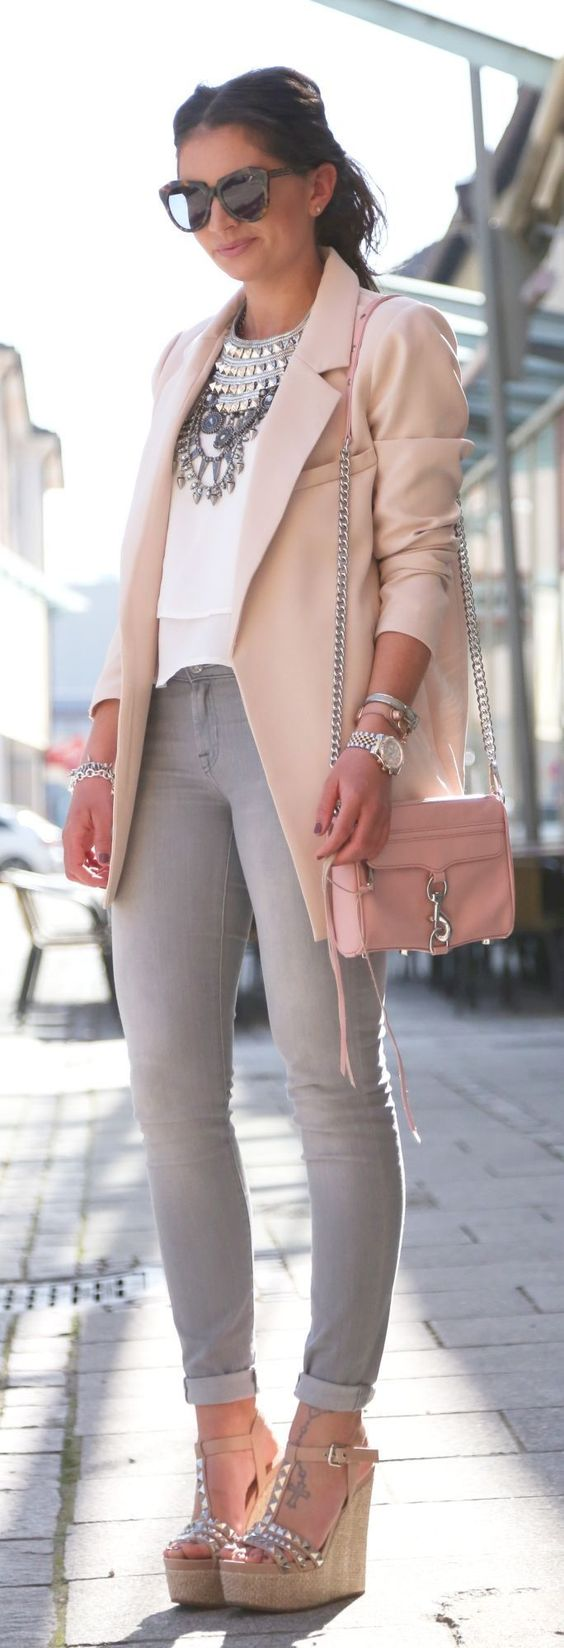 Your virtual closet allows you to organize and share your outfits and clothes among your friends. NEW APP ♥ DOWNLOAD NOW ♥ FOR FREE !!! www.dressandfrien...